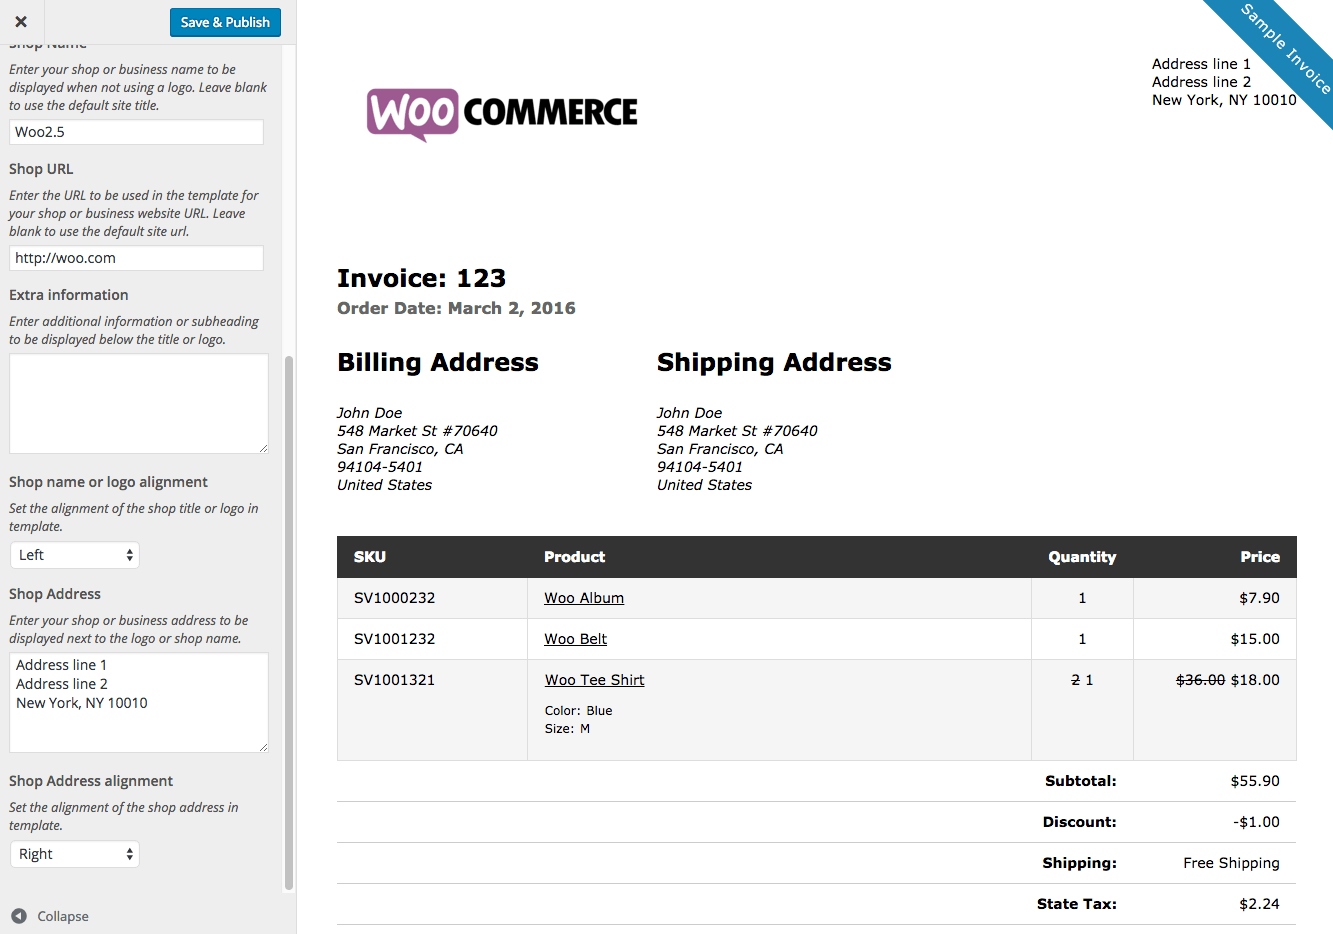 Opposenewapstandardsus  Prepossessing Print Invoices Amp Packing Lists  Woocommerce With Inspiring Woocommerce Print Invoices  Packing Lists Customizer With Adorable Commercial Invoice For Export Also Best Free Invoice Template In Addition Ebay Paypal Invoice And  Toyota Highlander Invoice Price As Well As How To Email Invoices From Quickbooks Additionally Invoicing With Paypal From Woocommercecom With Opposenewapstandardsus  Inspiring Print Invoices Amp Packing Lists  Woocommerce With Adorable Woocommerce Print Invoices  Packing Lists Customizer And Prepossessing Commercial Invoice For Export Also Best Free Invoice Template In Addition Ebay Paypal Invoice From Woocommercecom